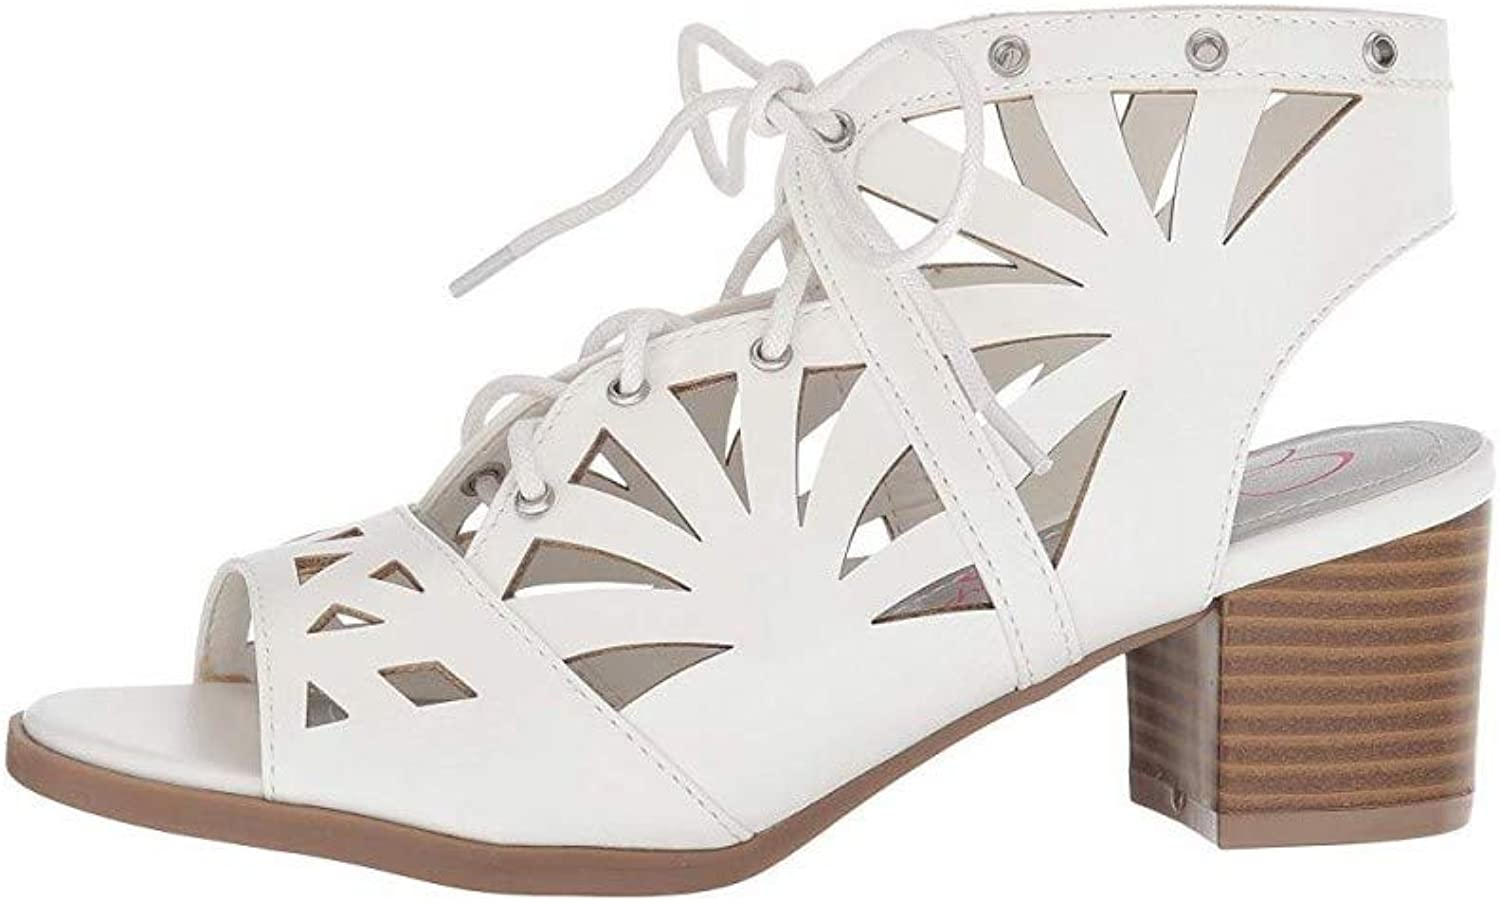 Jessica Simpson Womens Carly Open Toe Classic Pumps